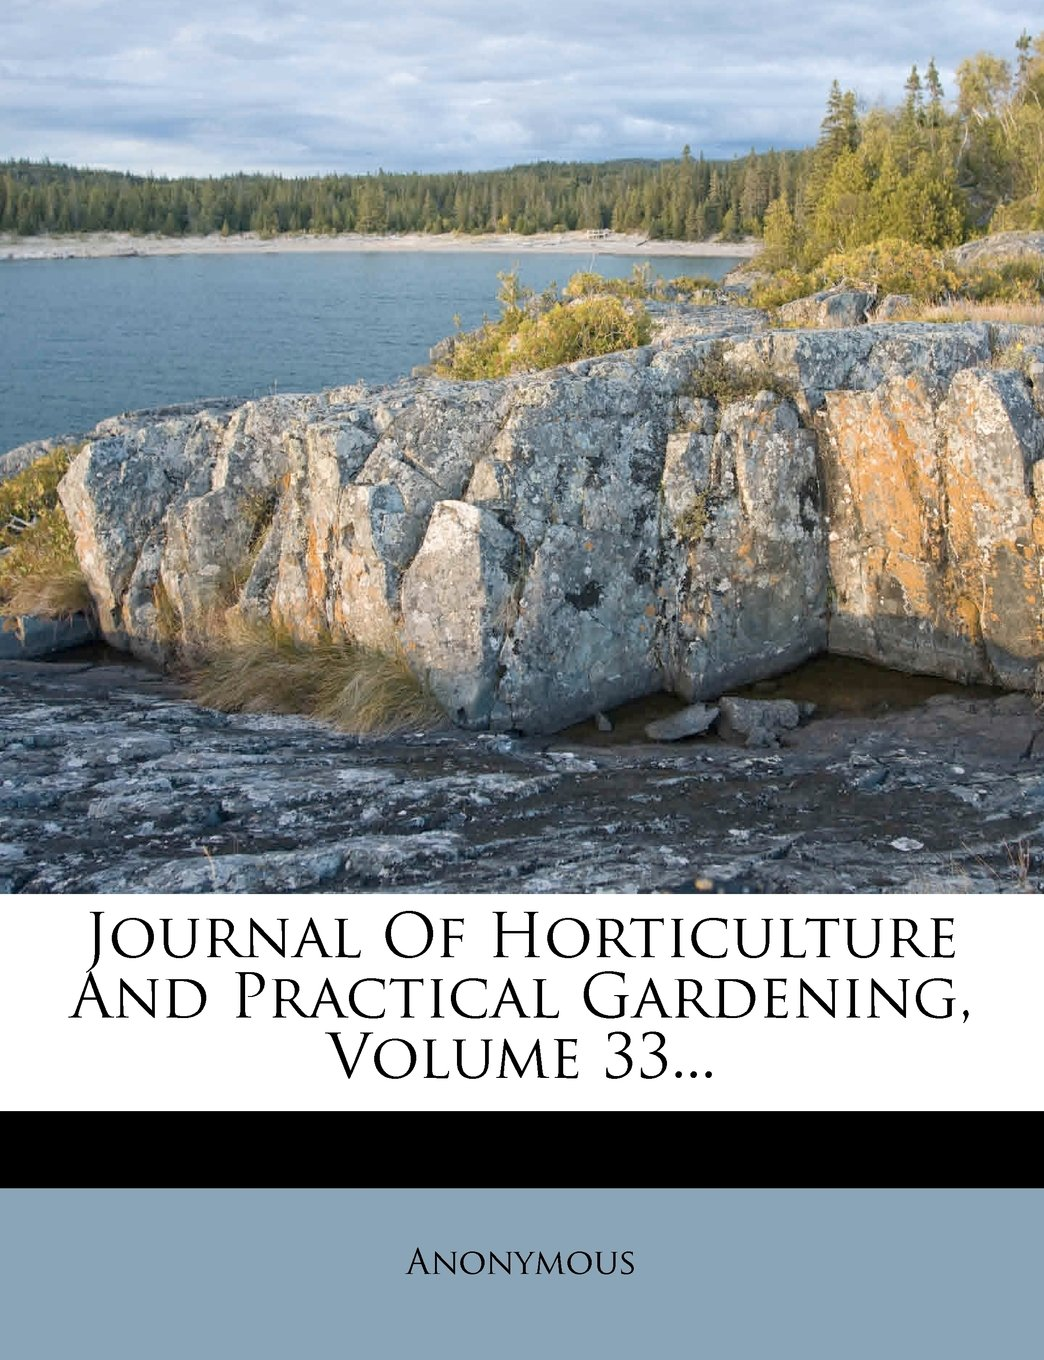 Journal Of Horticulture And Practical Gardening, Volume 33... ebook